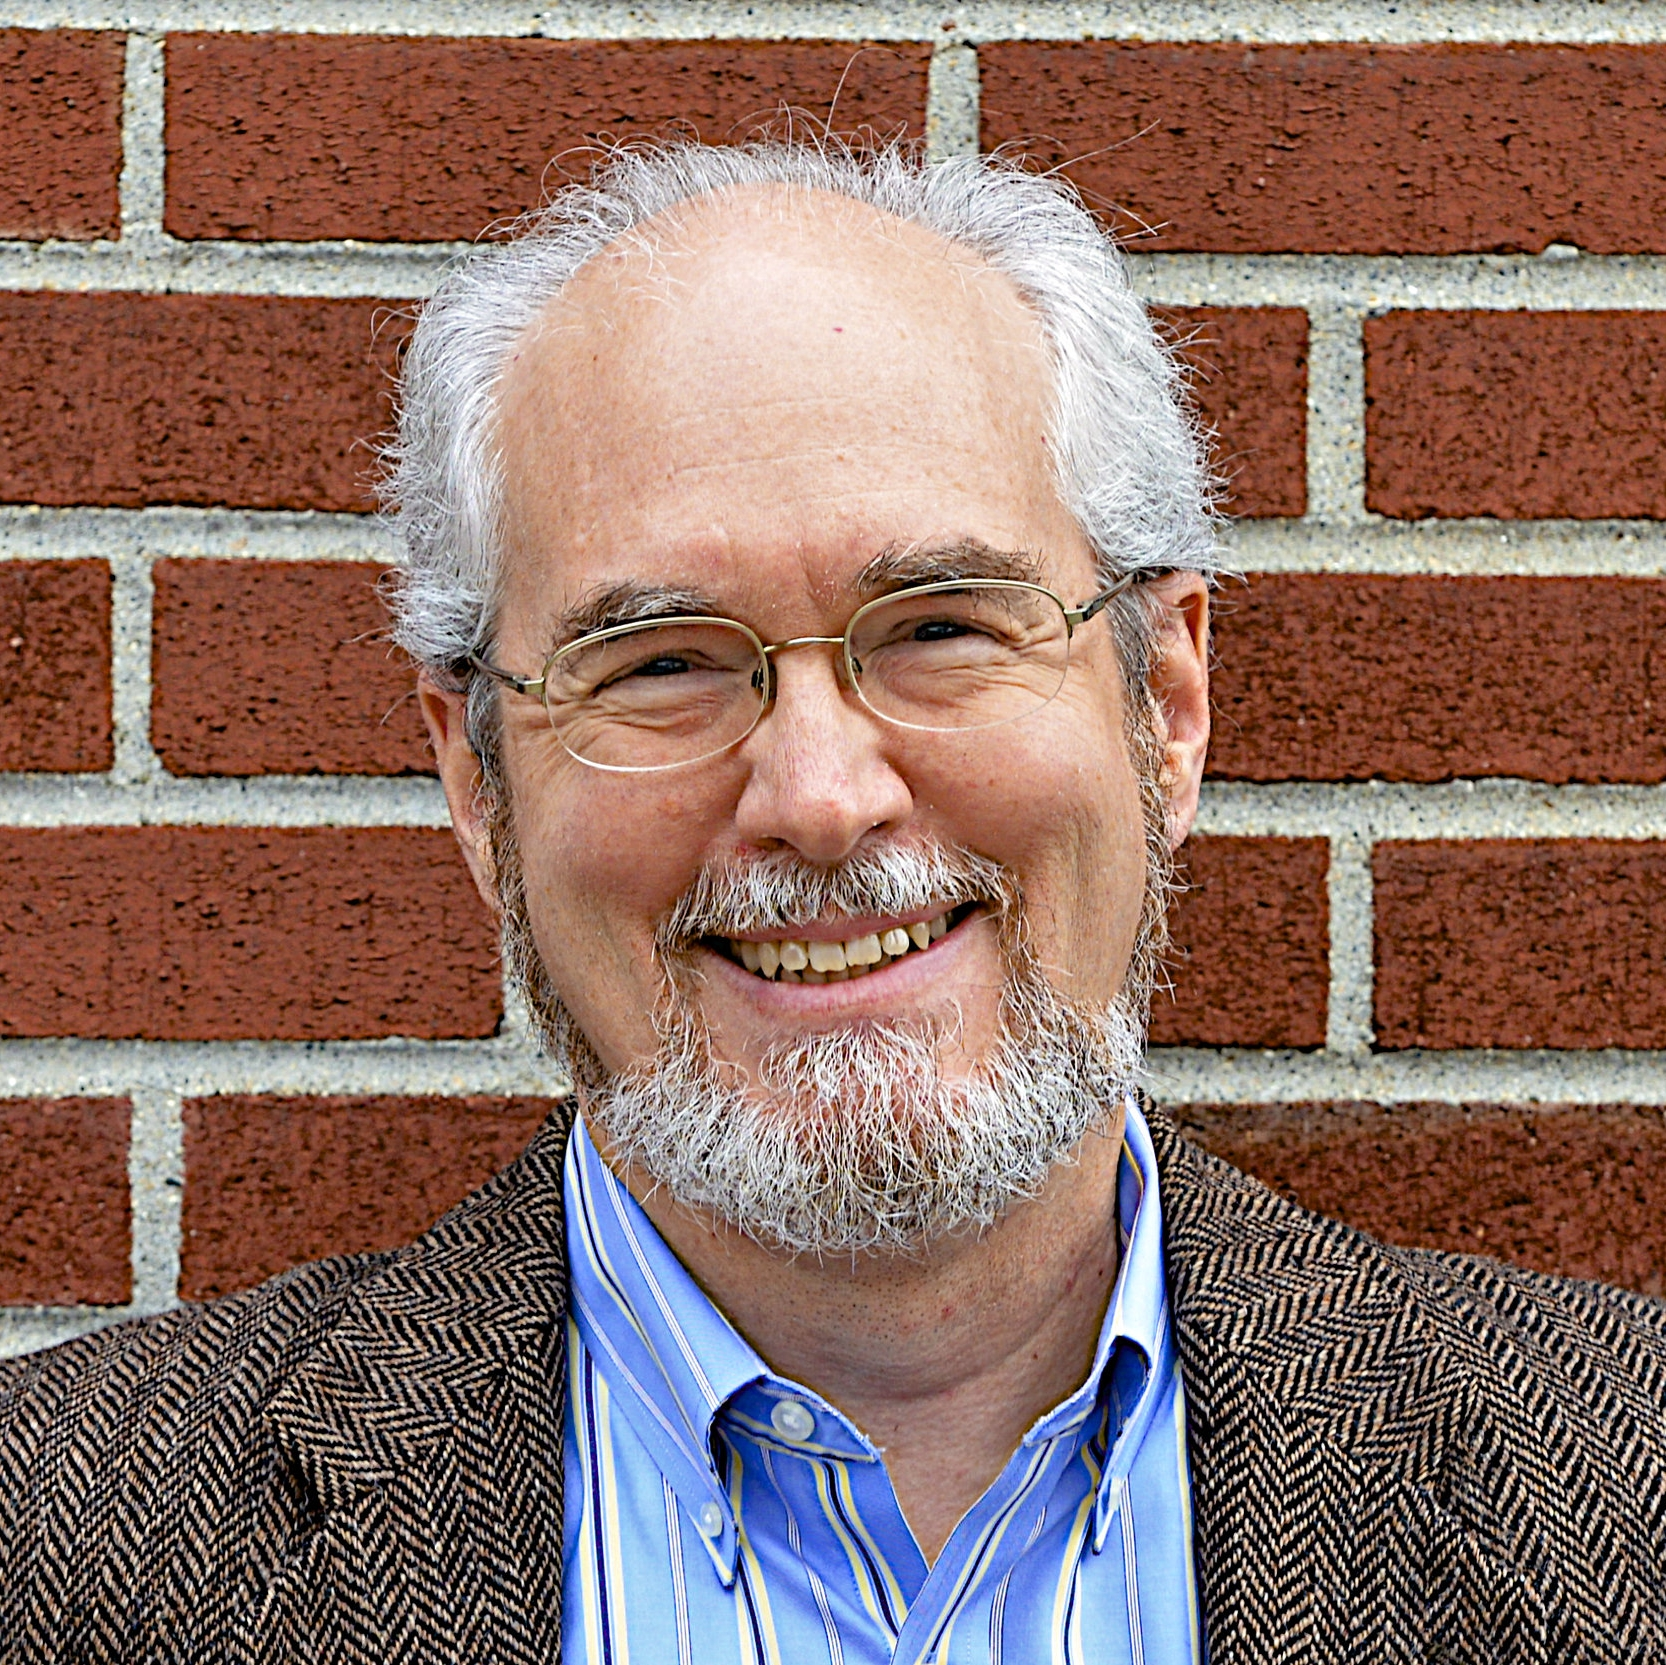 J. David Gibbs - Executive Directordgibbs@caasomerville.orgDavid has been the Executive Director of CAAS since September 2014. David is an attorney with over 20 years of experience in the legal and nonprofit sectors, including serving as the Executive Director of the Cambridge Community Center and the Family Institute of Cambridge. He earned a law degree from Boston University School of Law and did his undergraduate work at Princeton University and the Rhode Island School of Design. More recently he attended the Institute for Nonprofit Management and Leadership at the Boston University School of Management. David and his family live in Somerville. When not working he can often be found hanging off the edge of a cliff rock climbing.